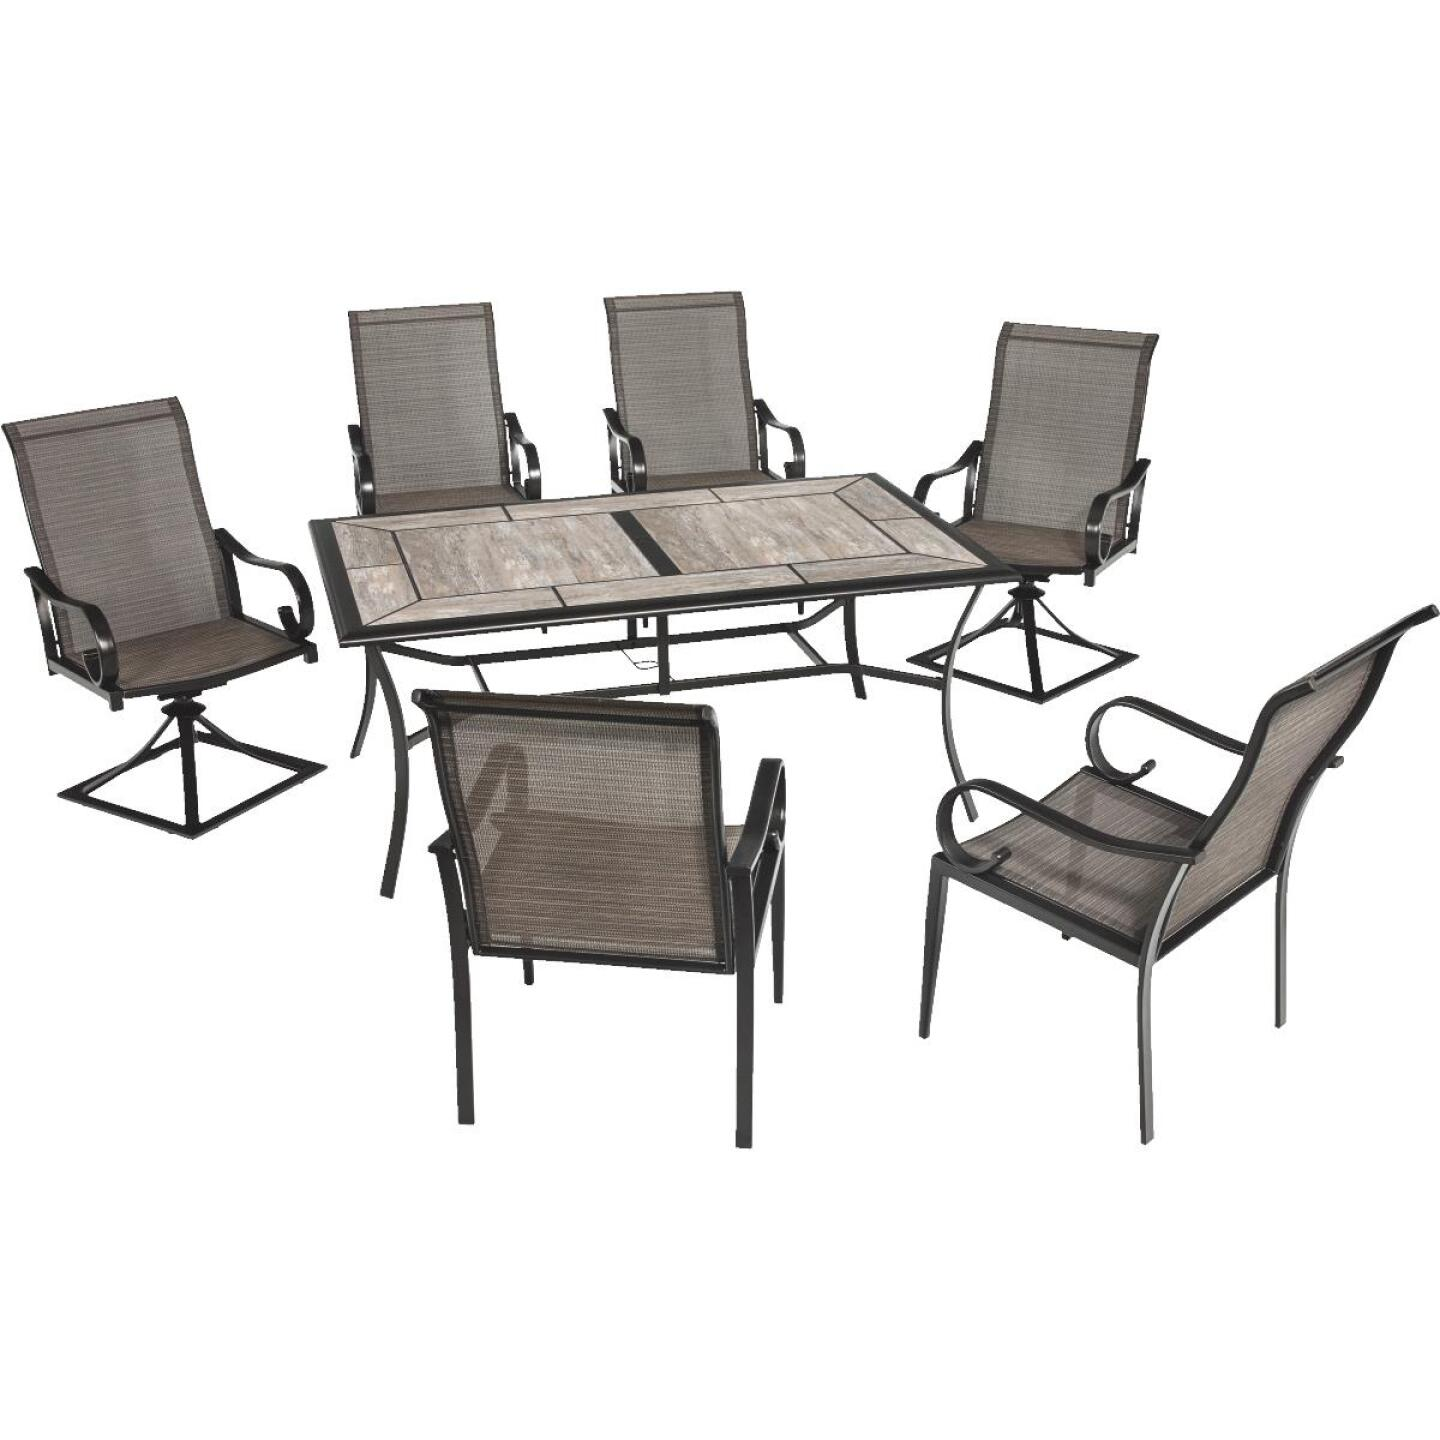 Outdoor Expressions Berkshire 7-Piece Dining Set Image 57